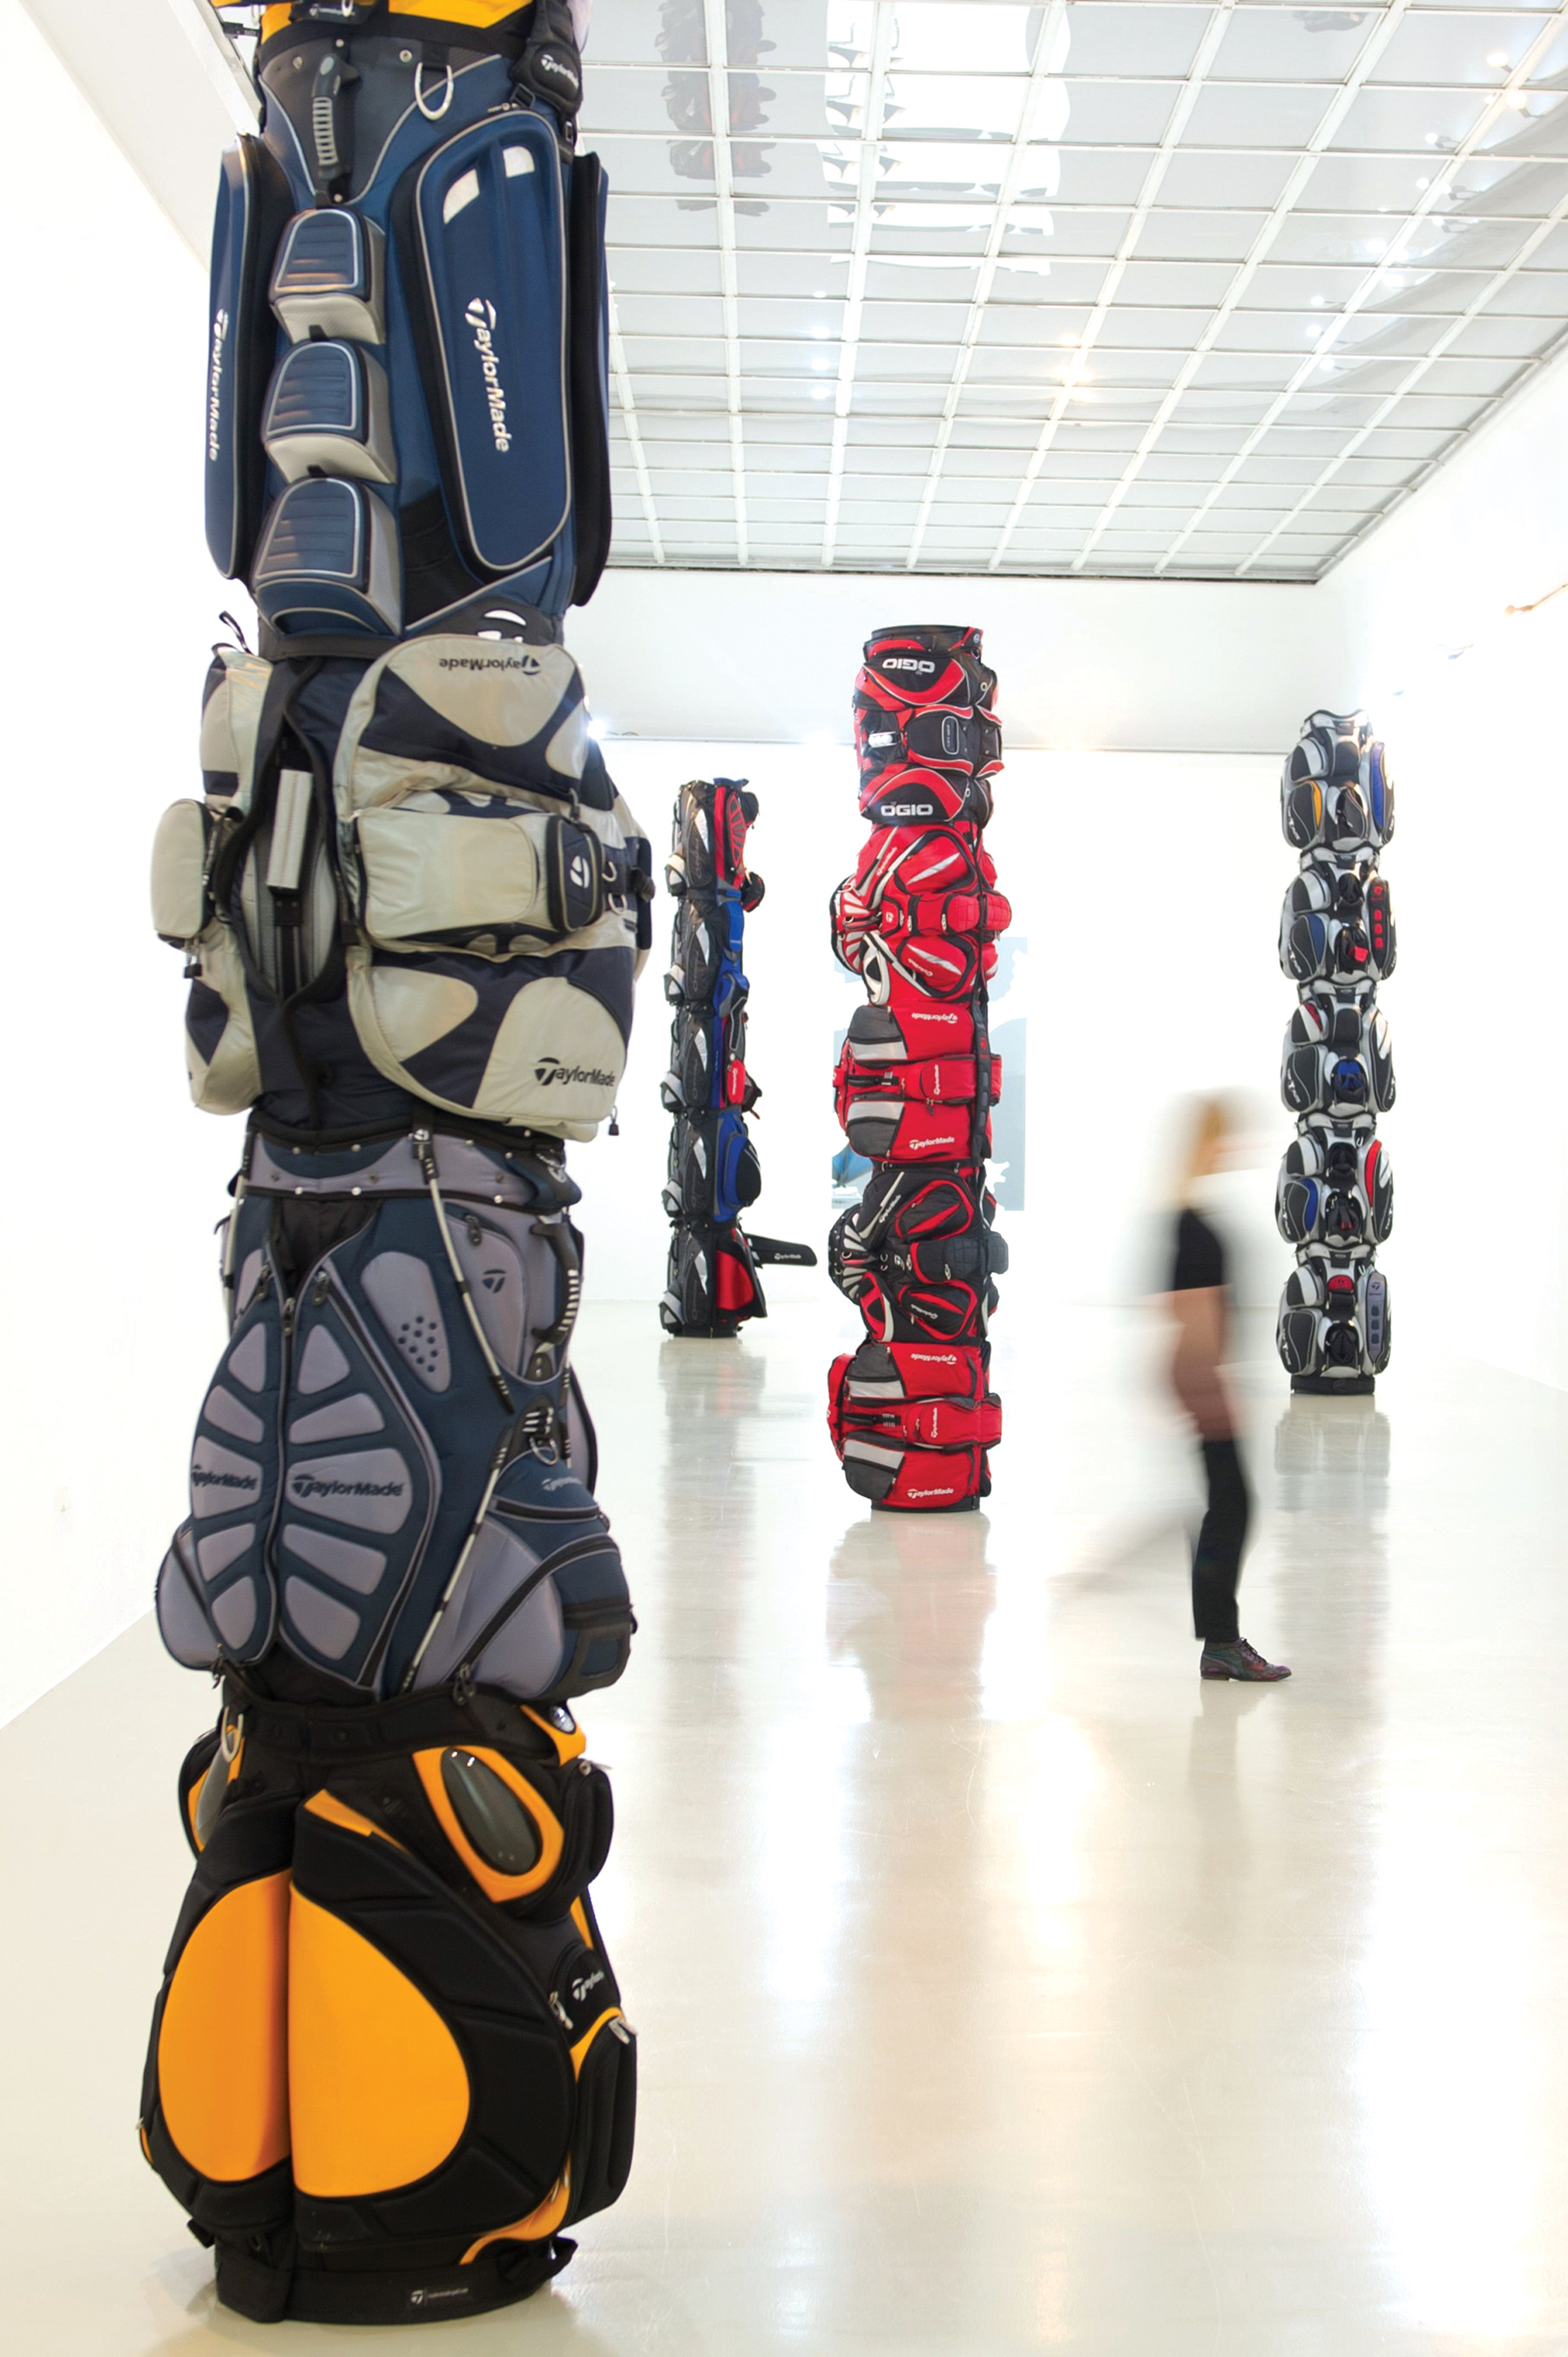 Totem poles by Canadian artist Brian Jungen, made from deconstructed golf bags